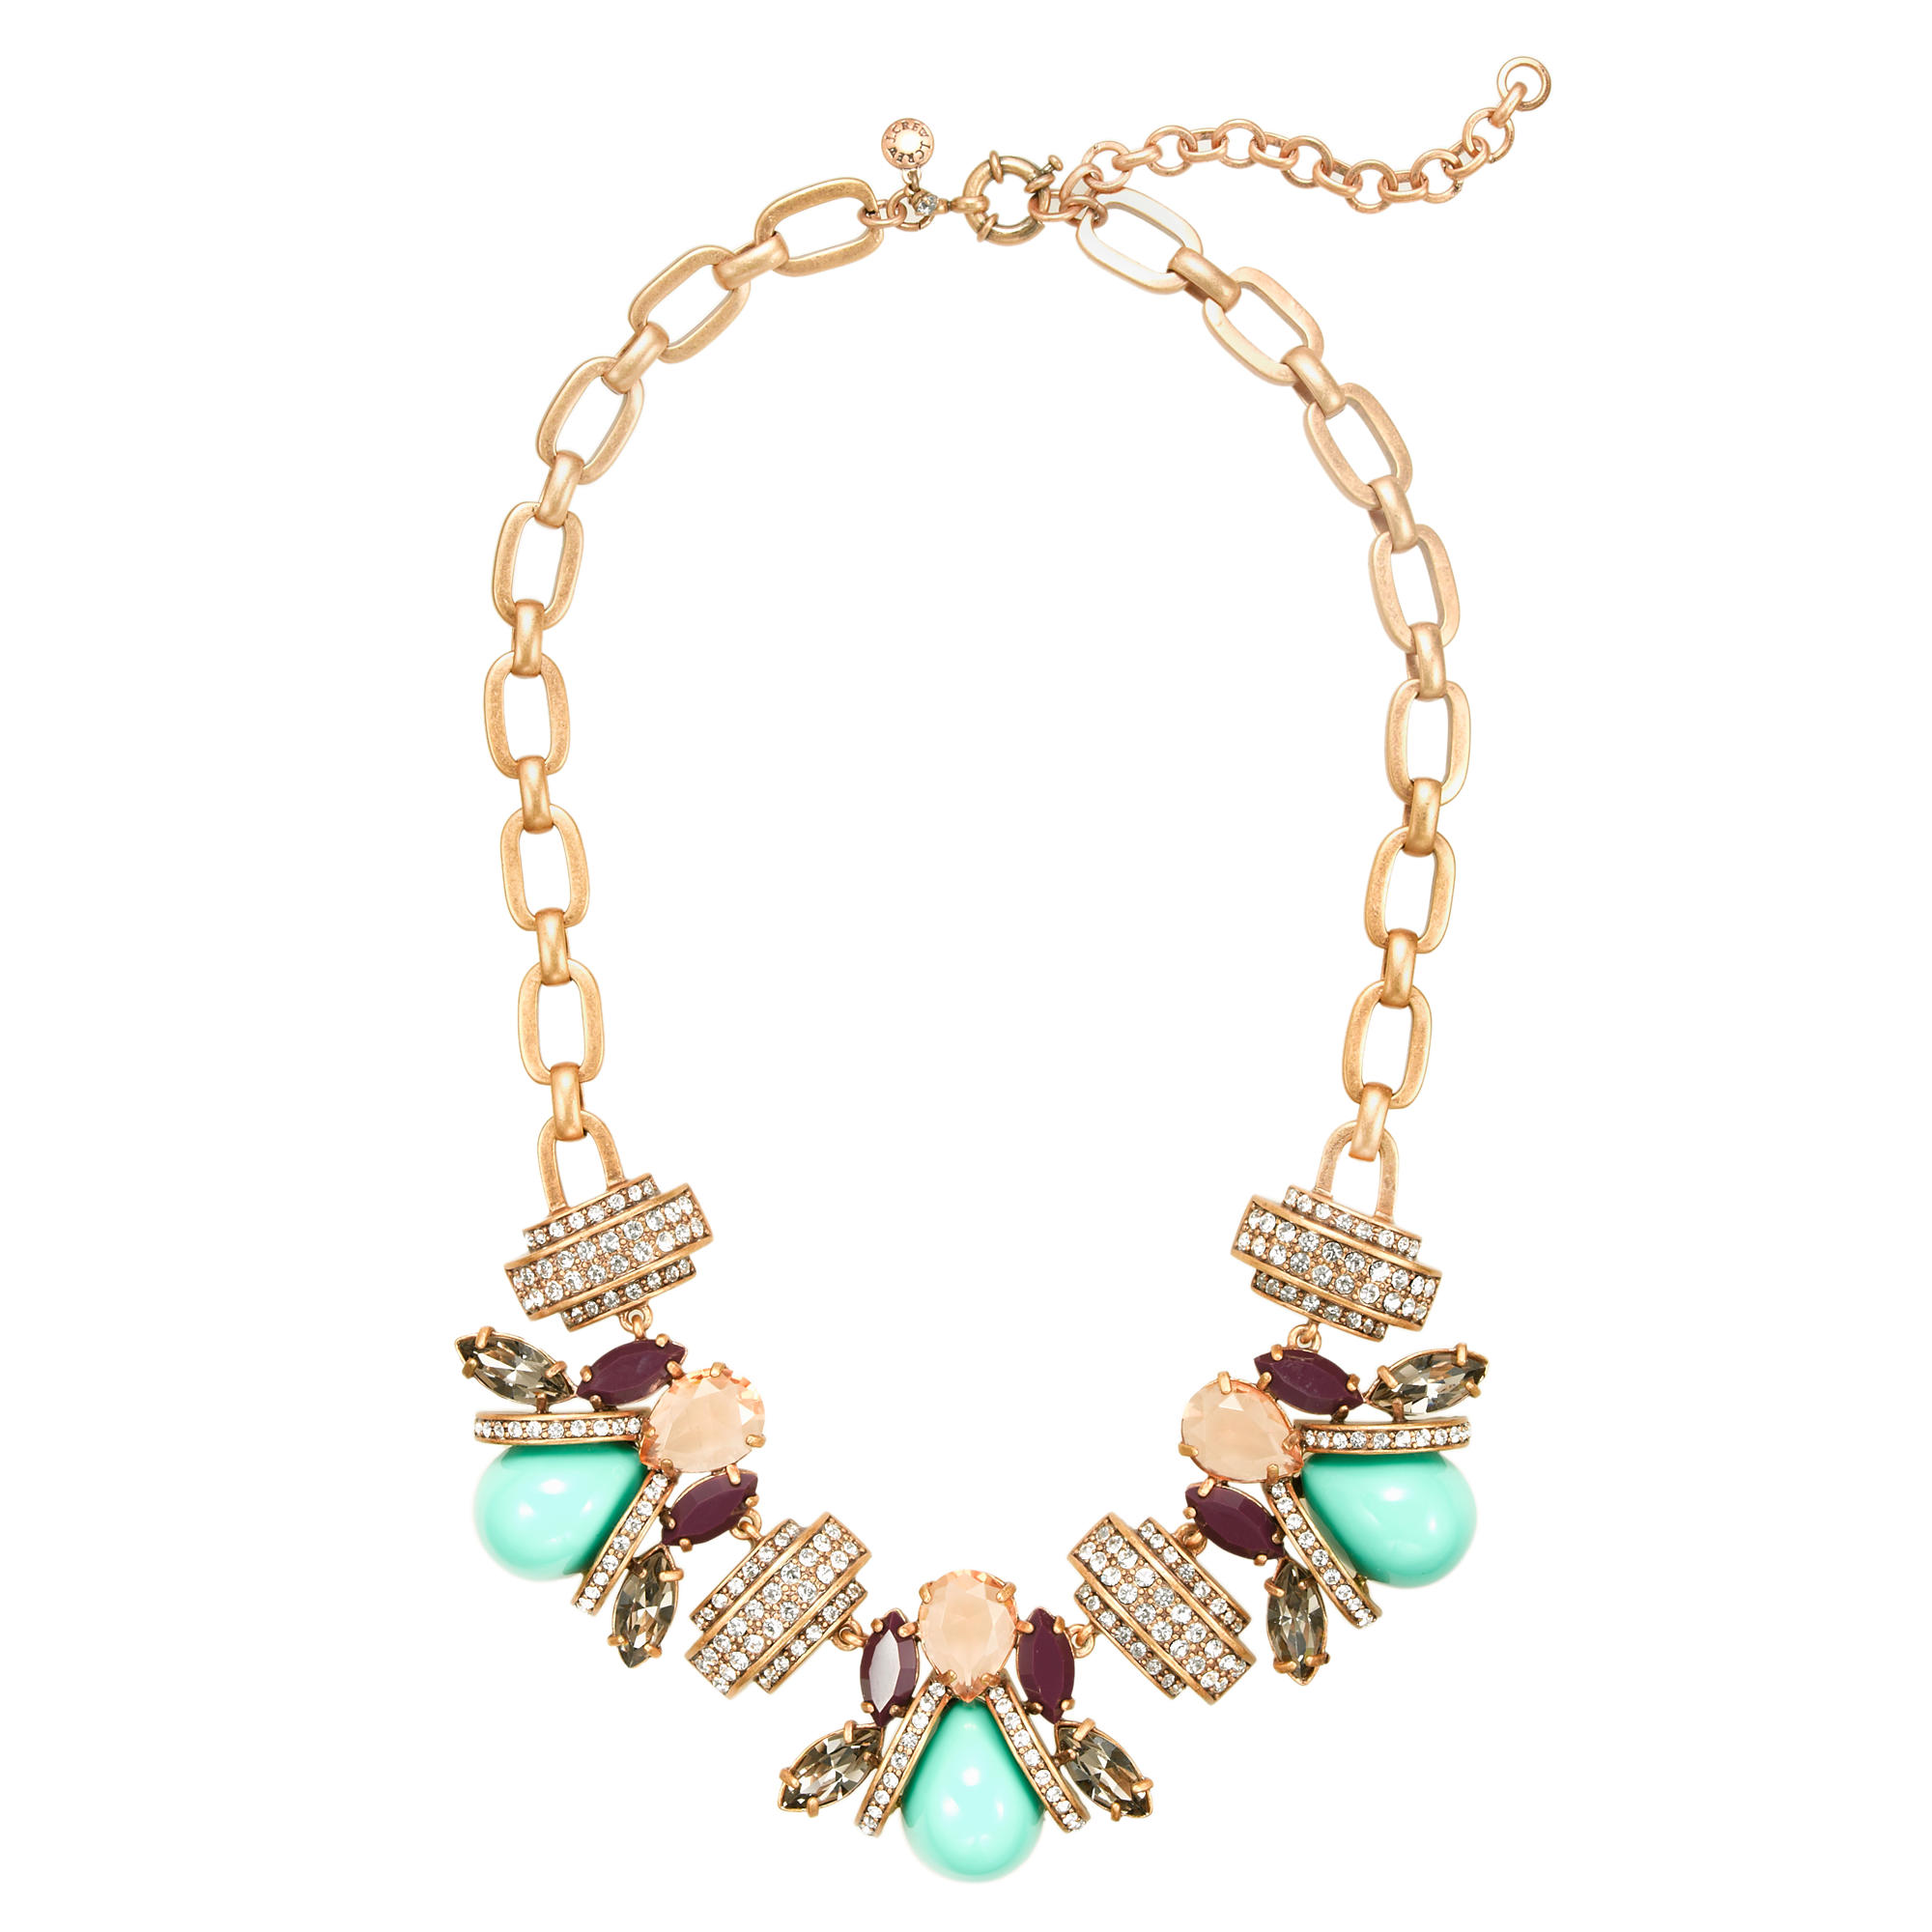 Honeybee necklace j crew for J crew jewelry 2015